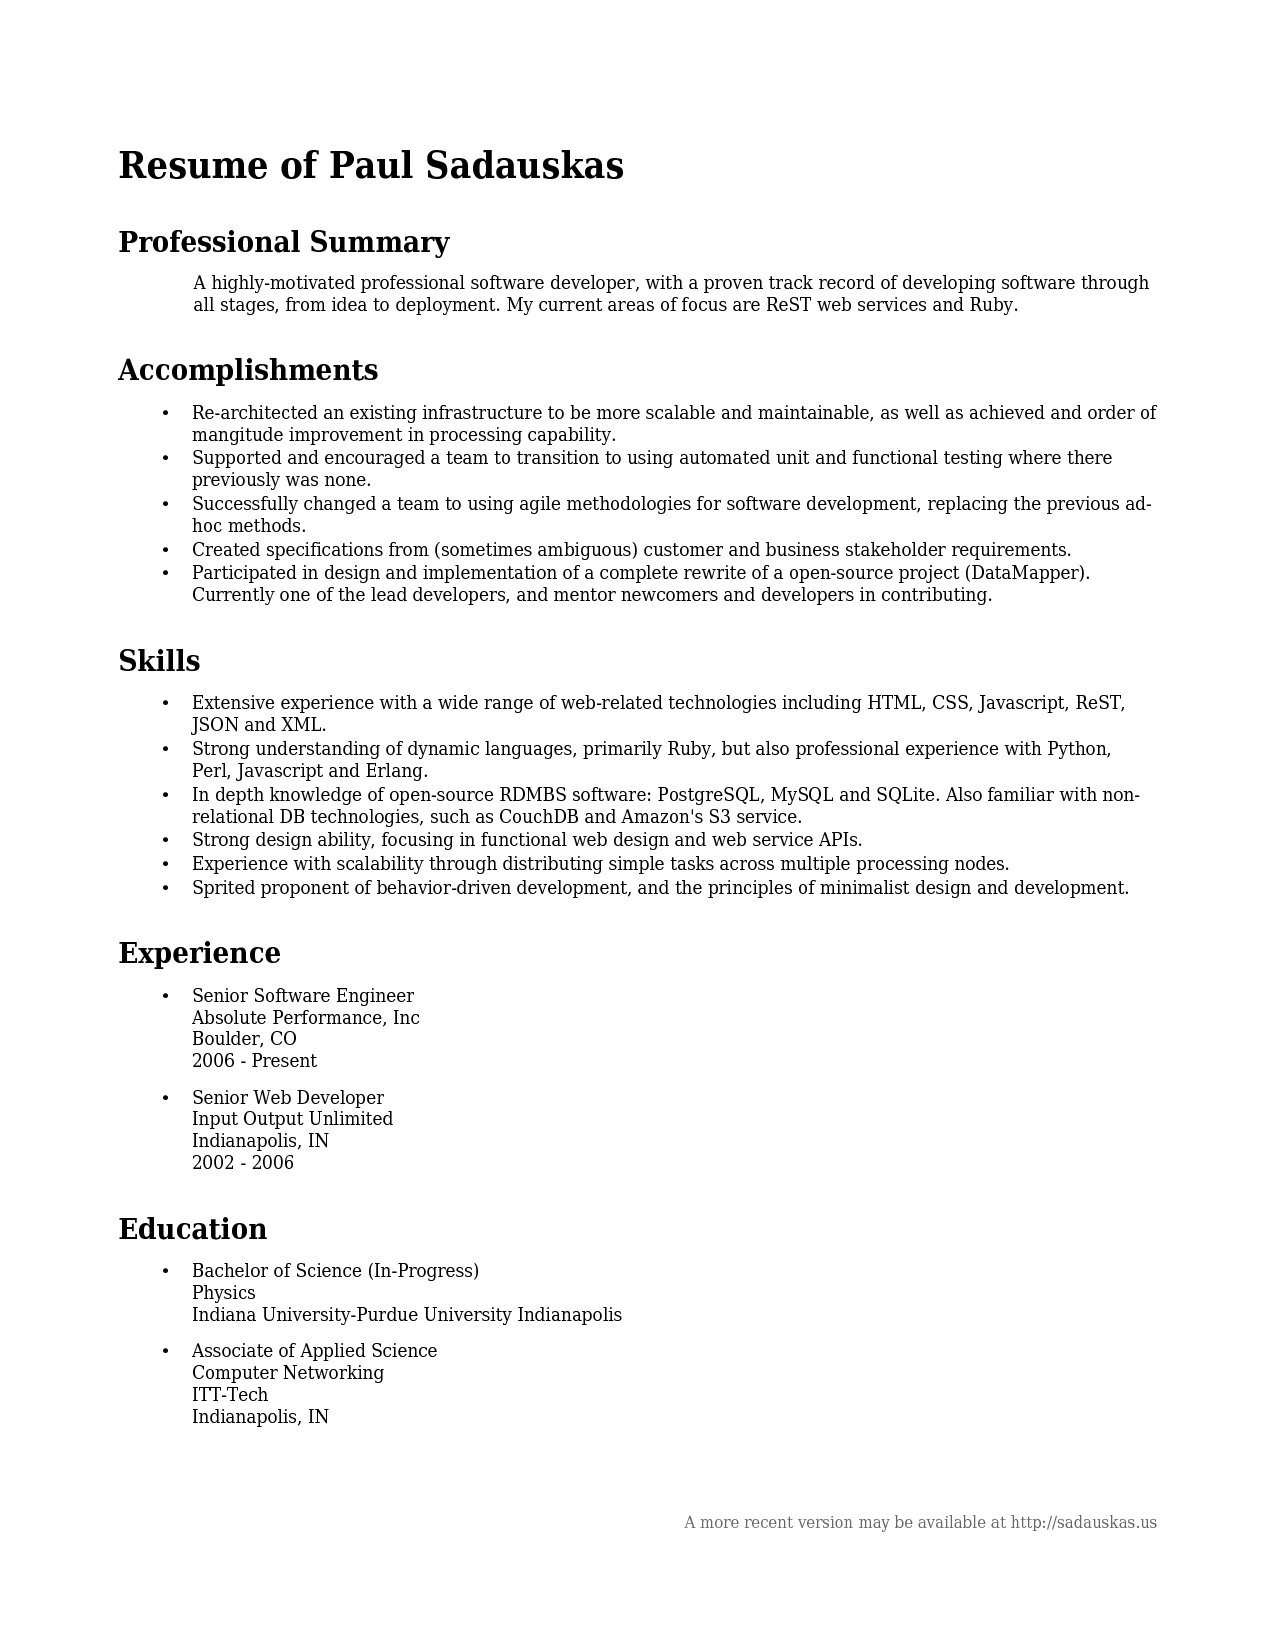 Resume Summary Statement Samples Professional Resume Summary 2016 Samplebusinessresume